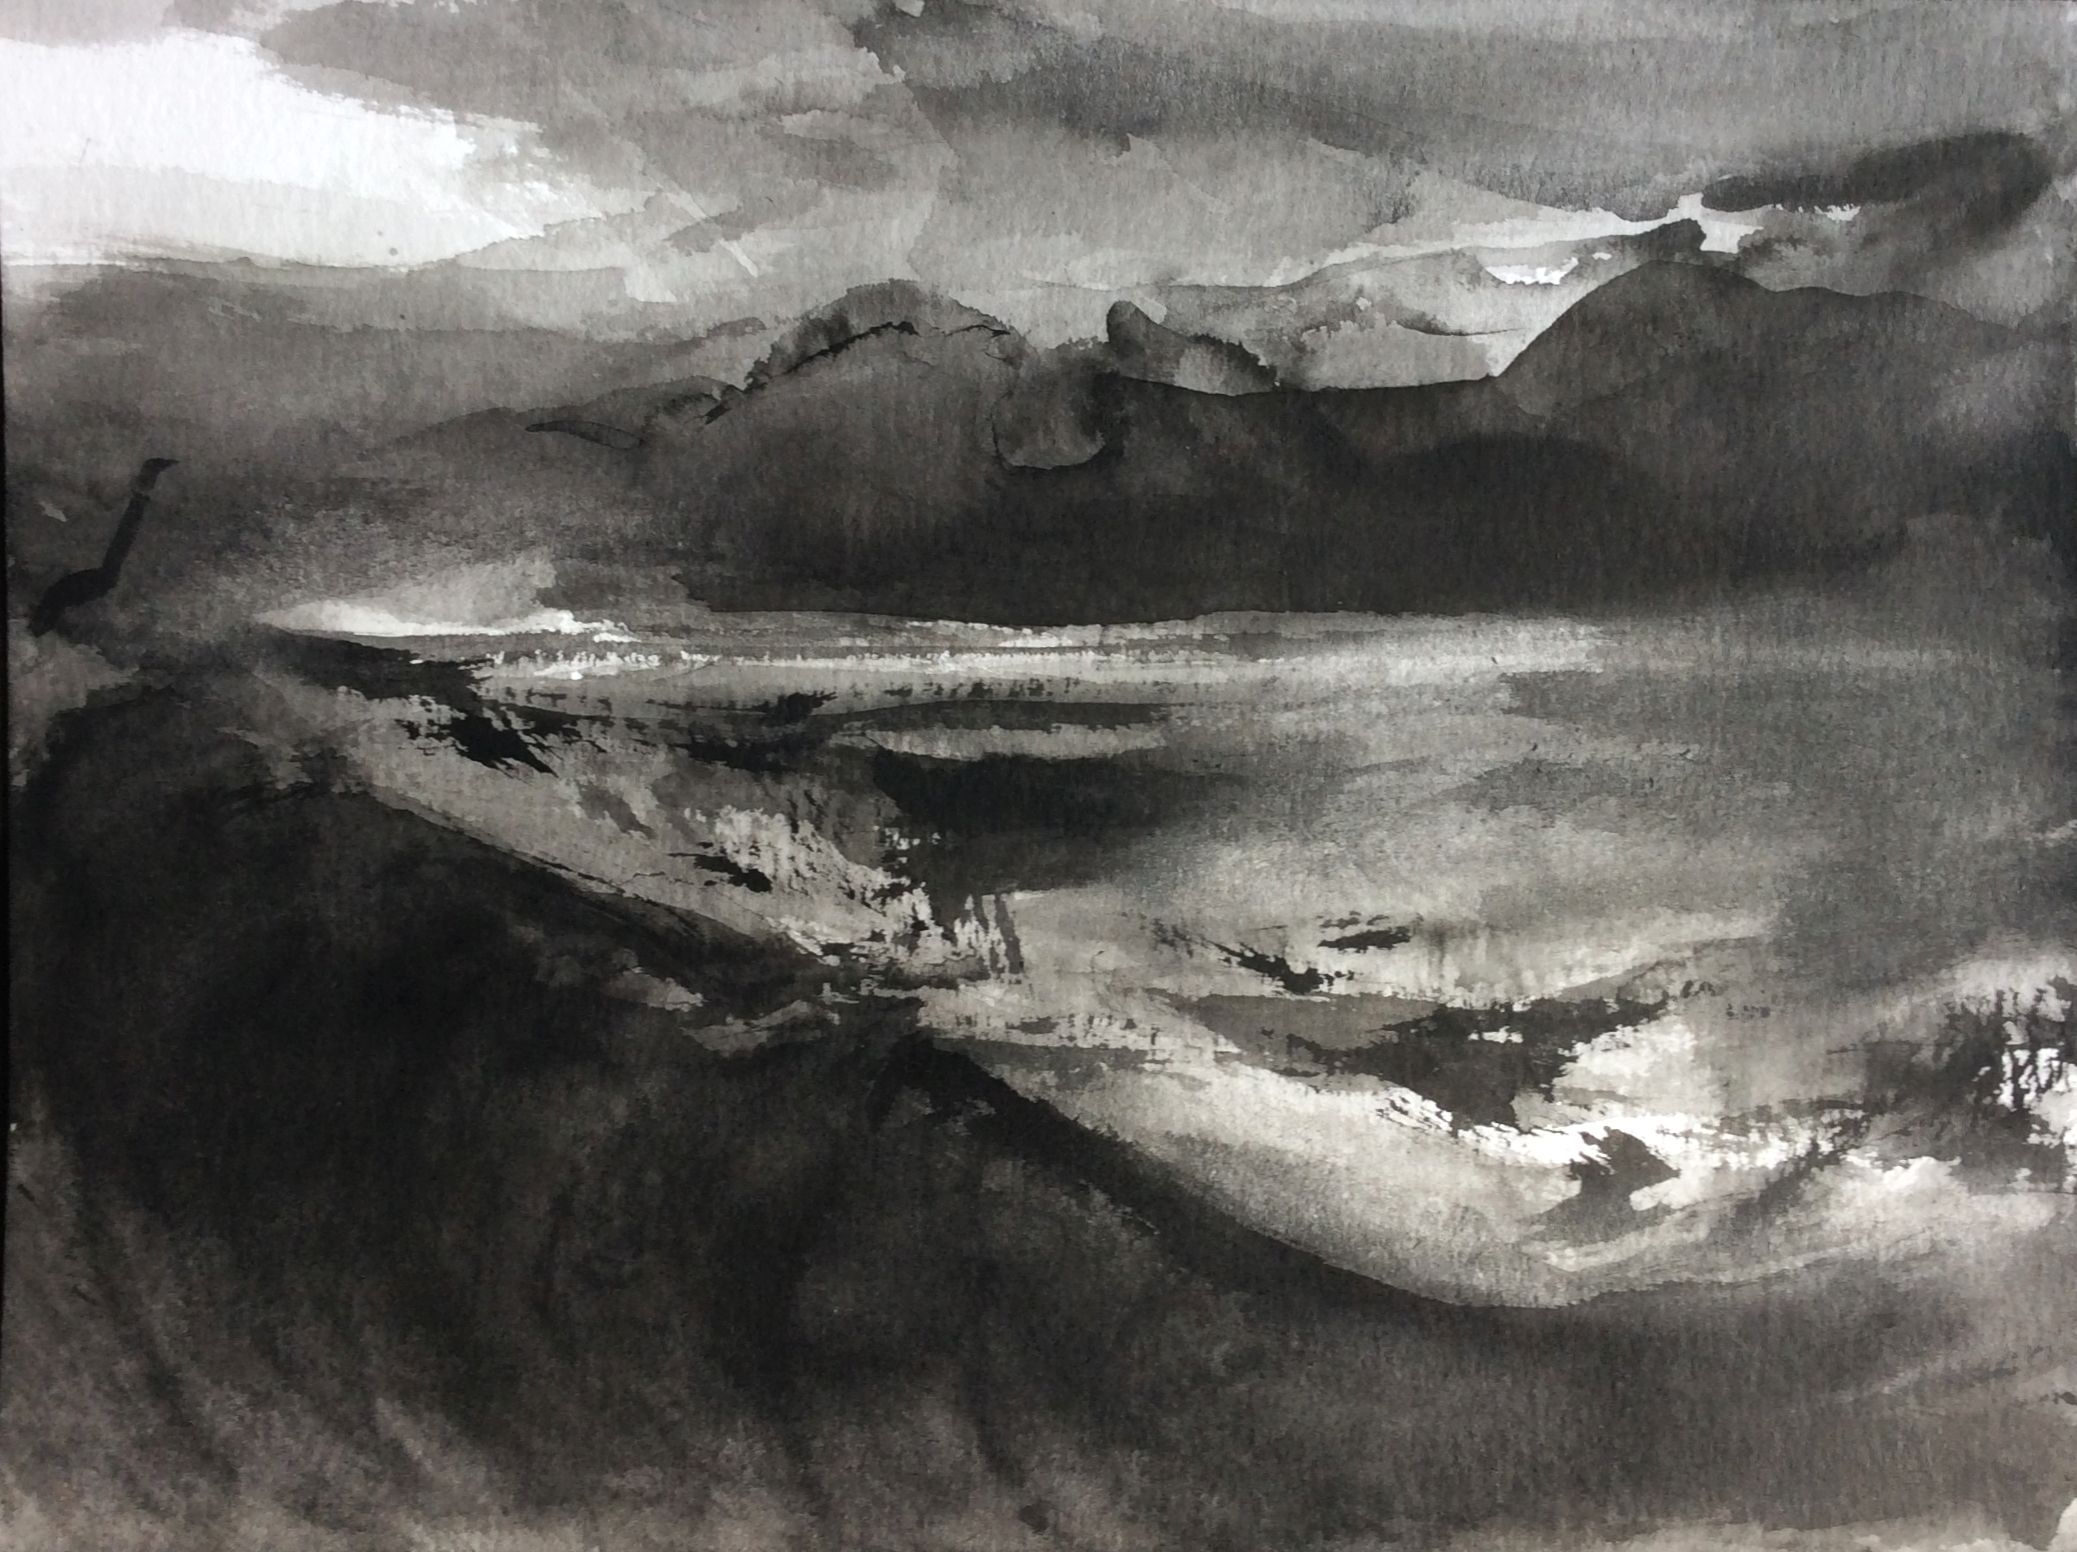 Afternoon at the seaside, 30x40cm, ink, paper, 2020